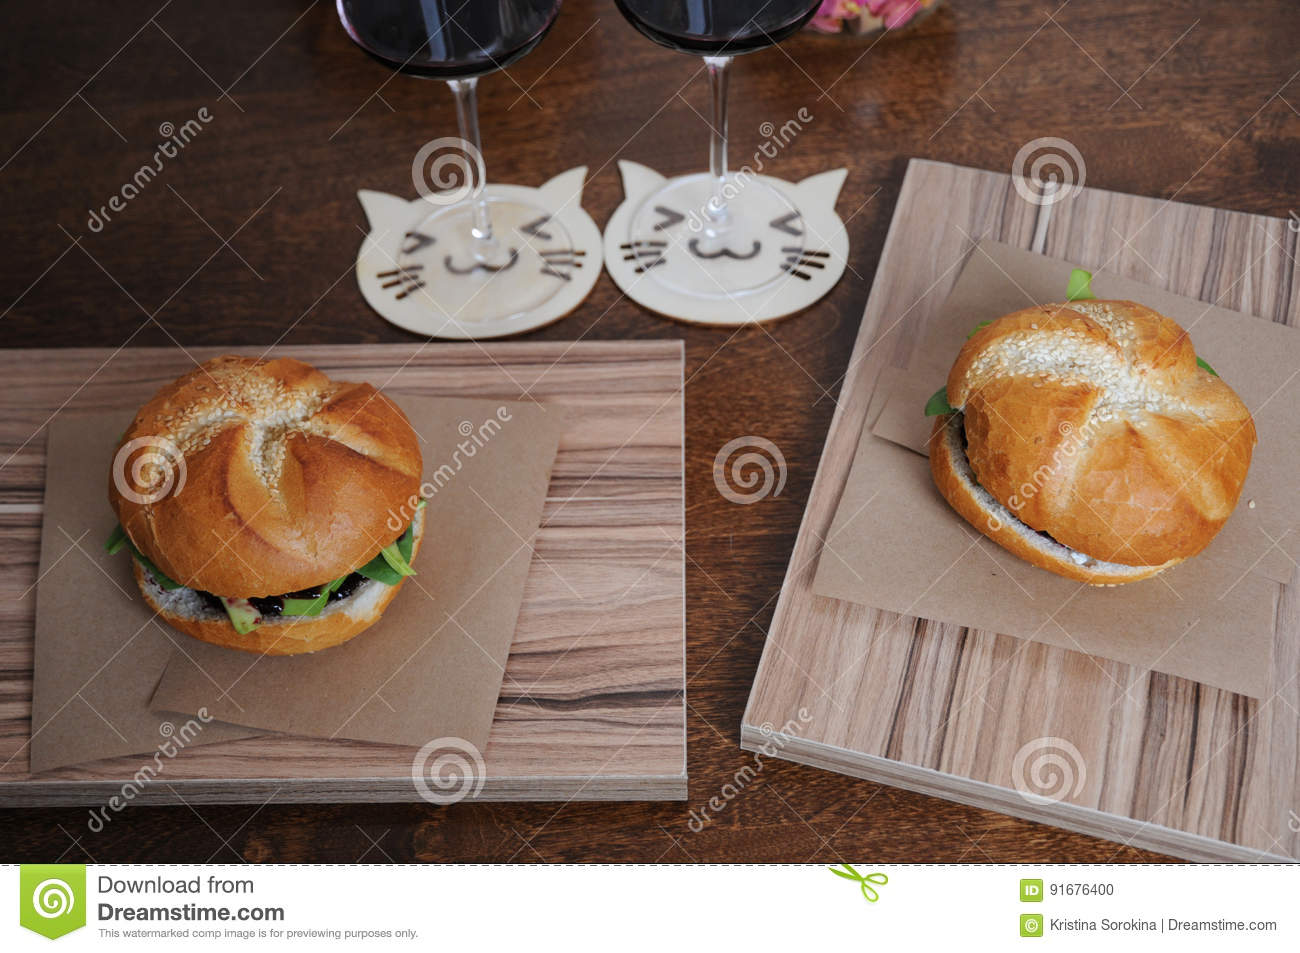 Two Burgers On Kraft Paper On Zebrano Boards And Two Glasses With